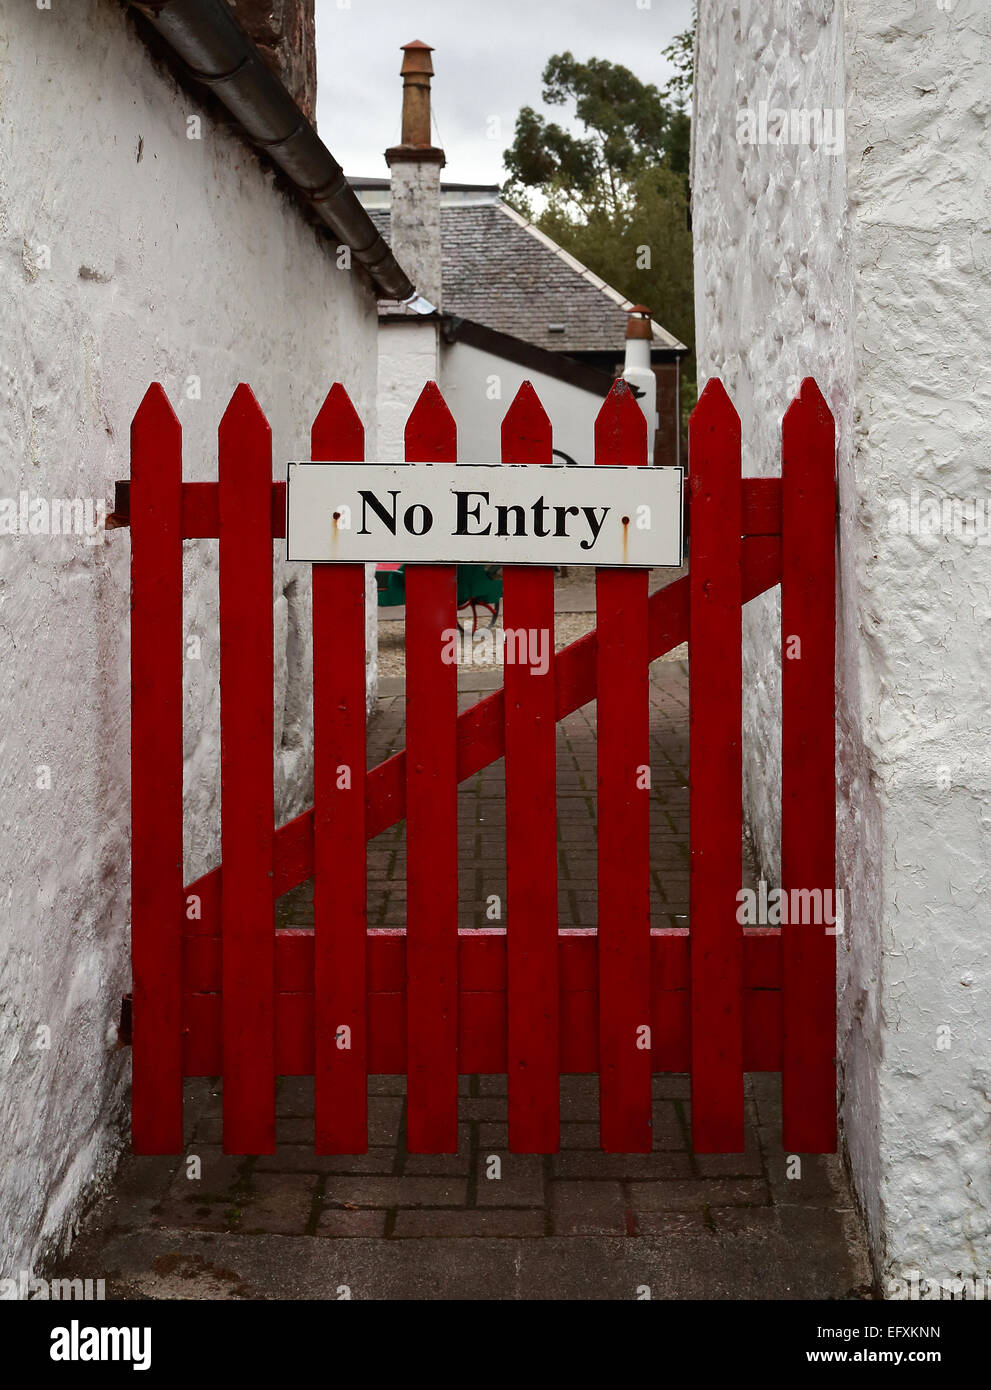 No Entry - Red wooden gate - Stock Image